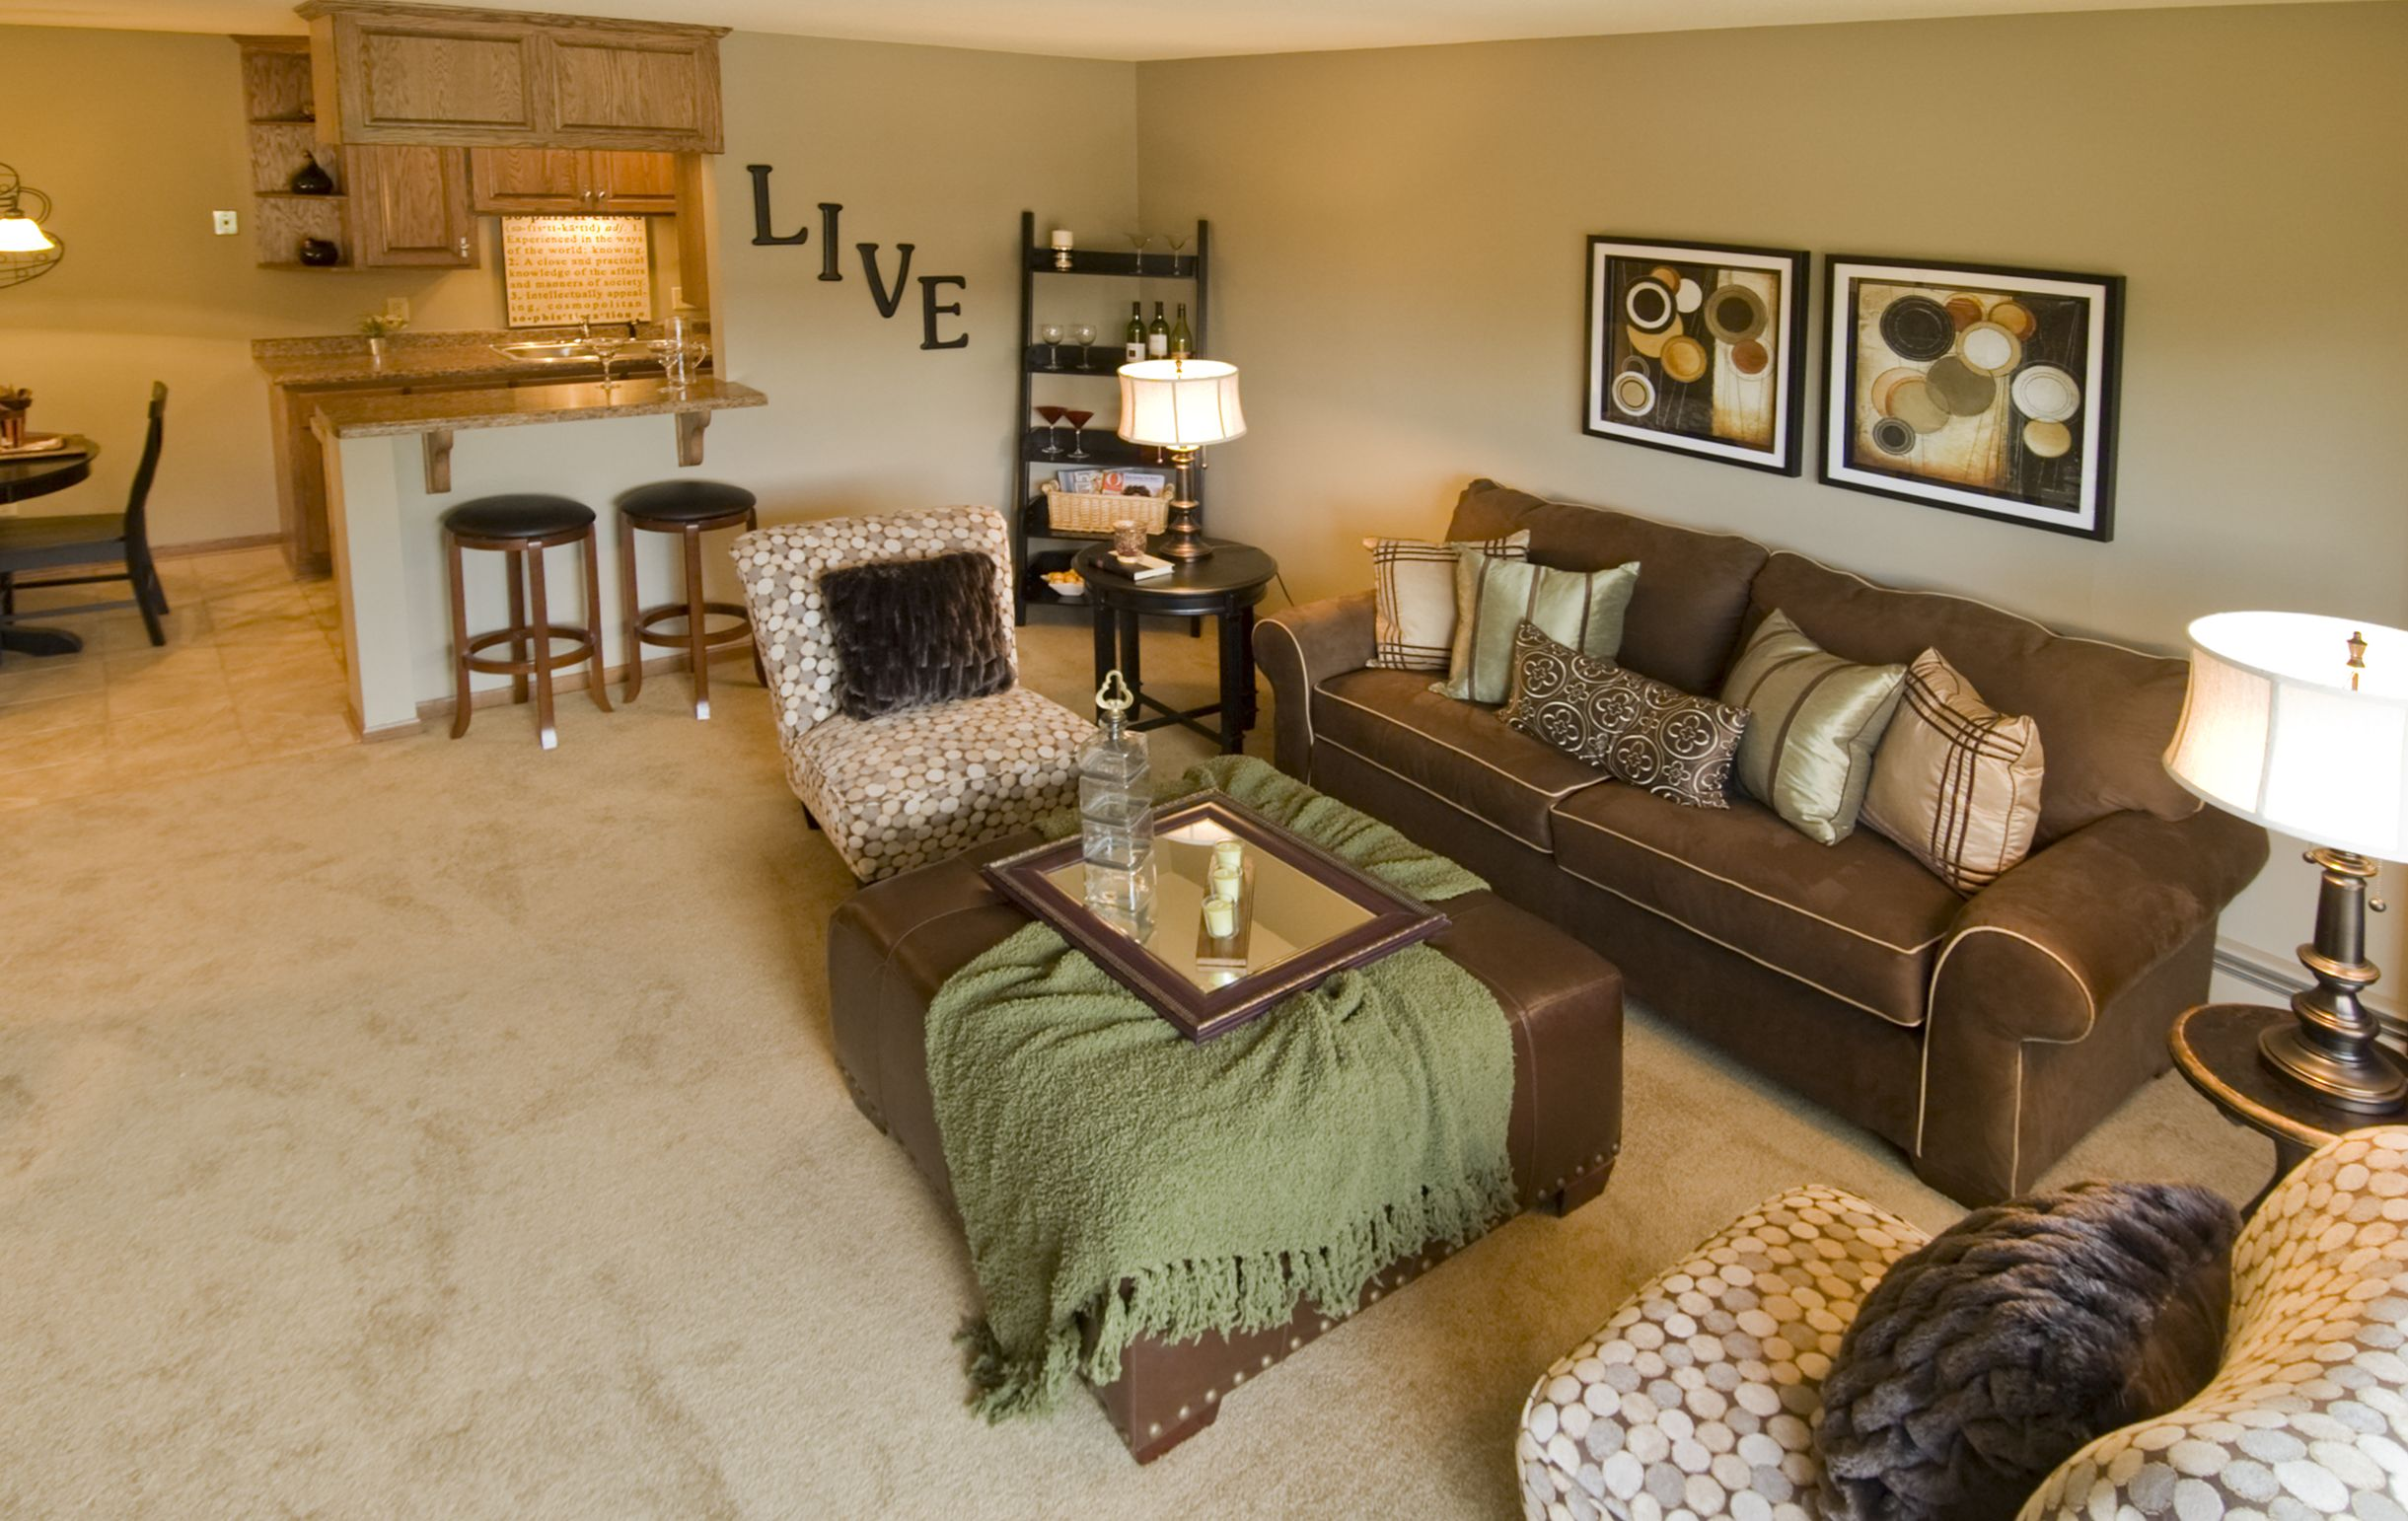 Apartment interior at Midland Terrace apartments in Shoreview MN